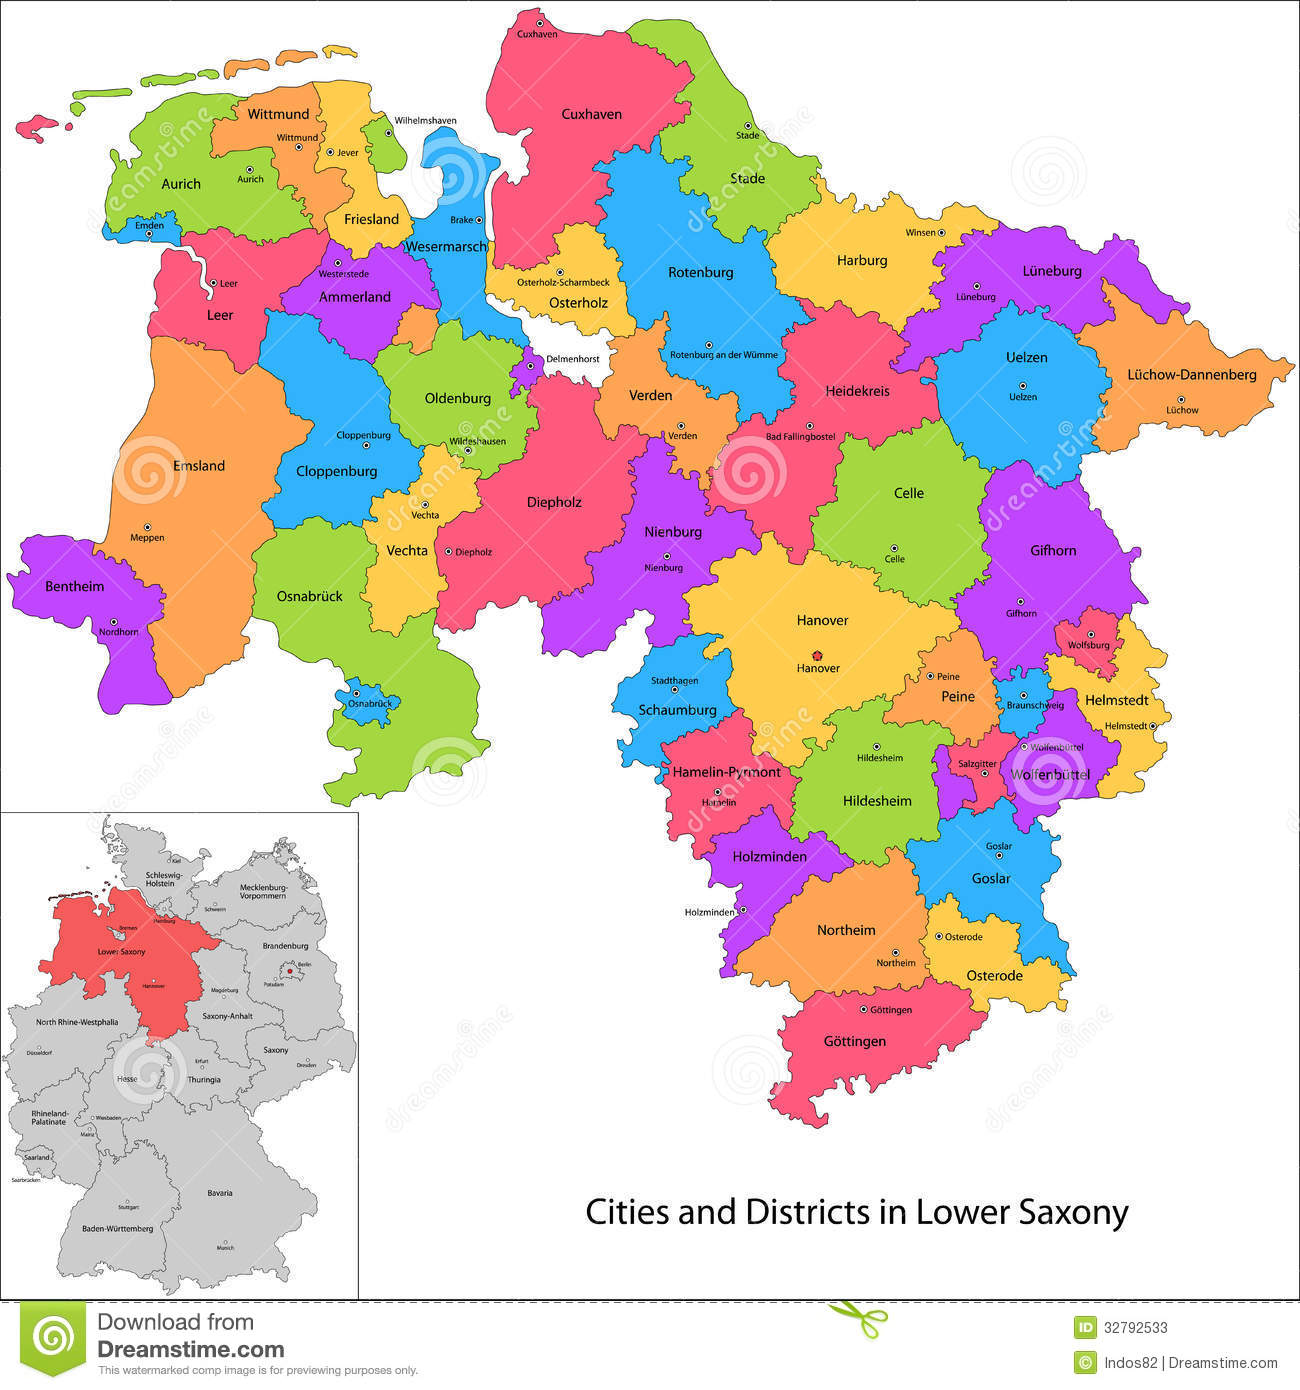 Map Of Southern Germany With Cities.Map Of Southern Germany With Cities Detailed Map Of Germany With